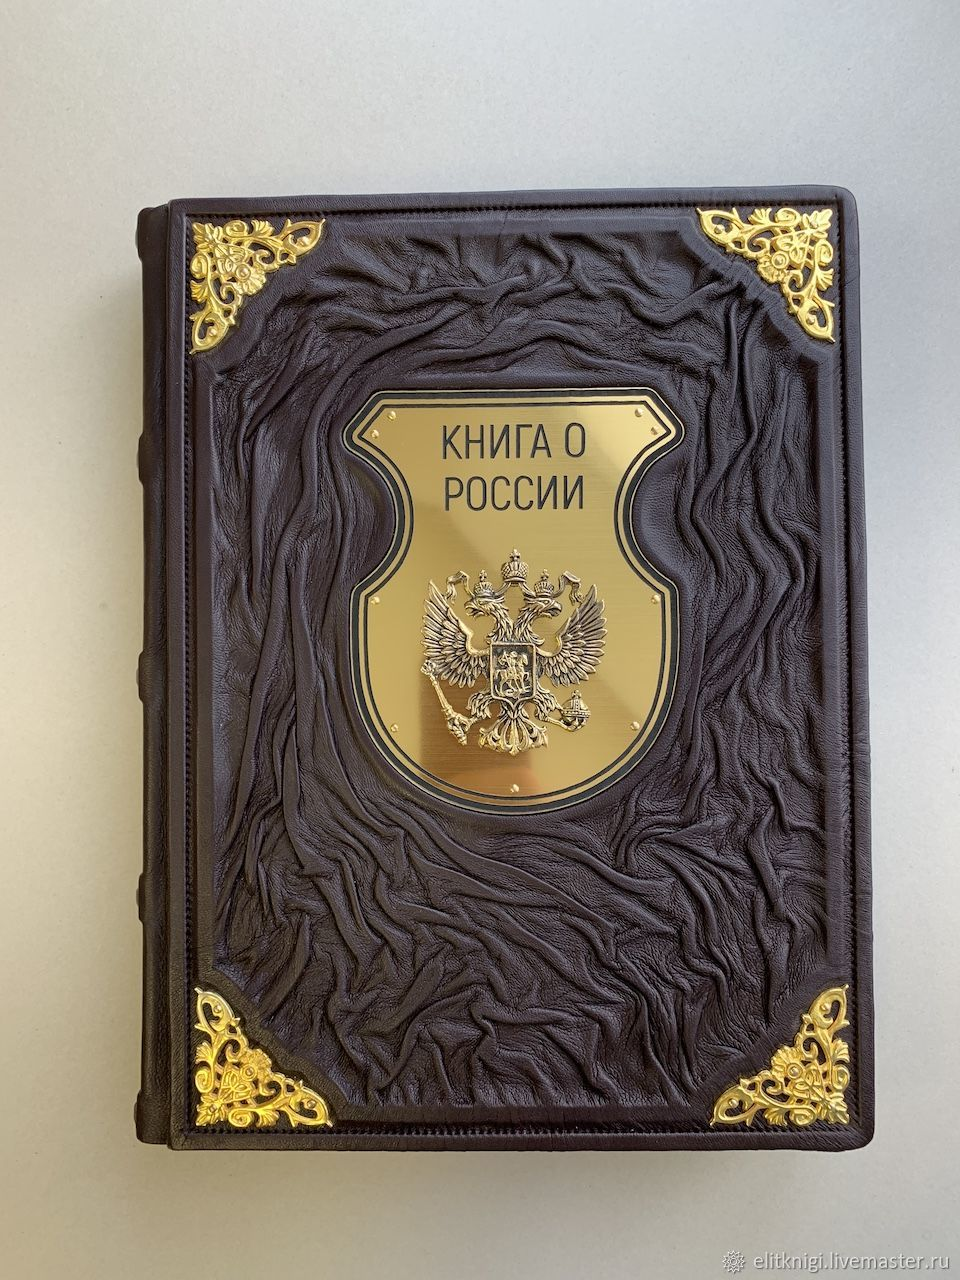 Book about Russia (gift leather book), Gift books, Moscow,  Фото №1